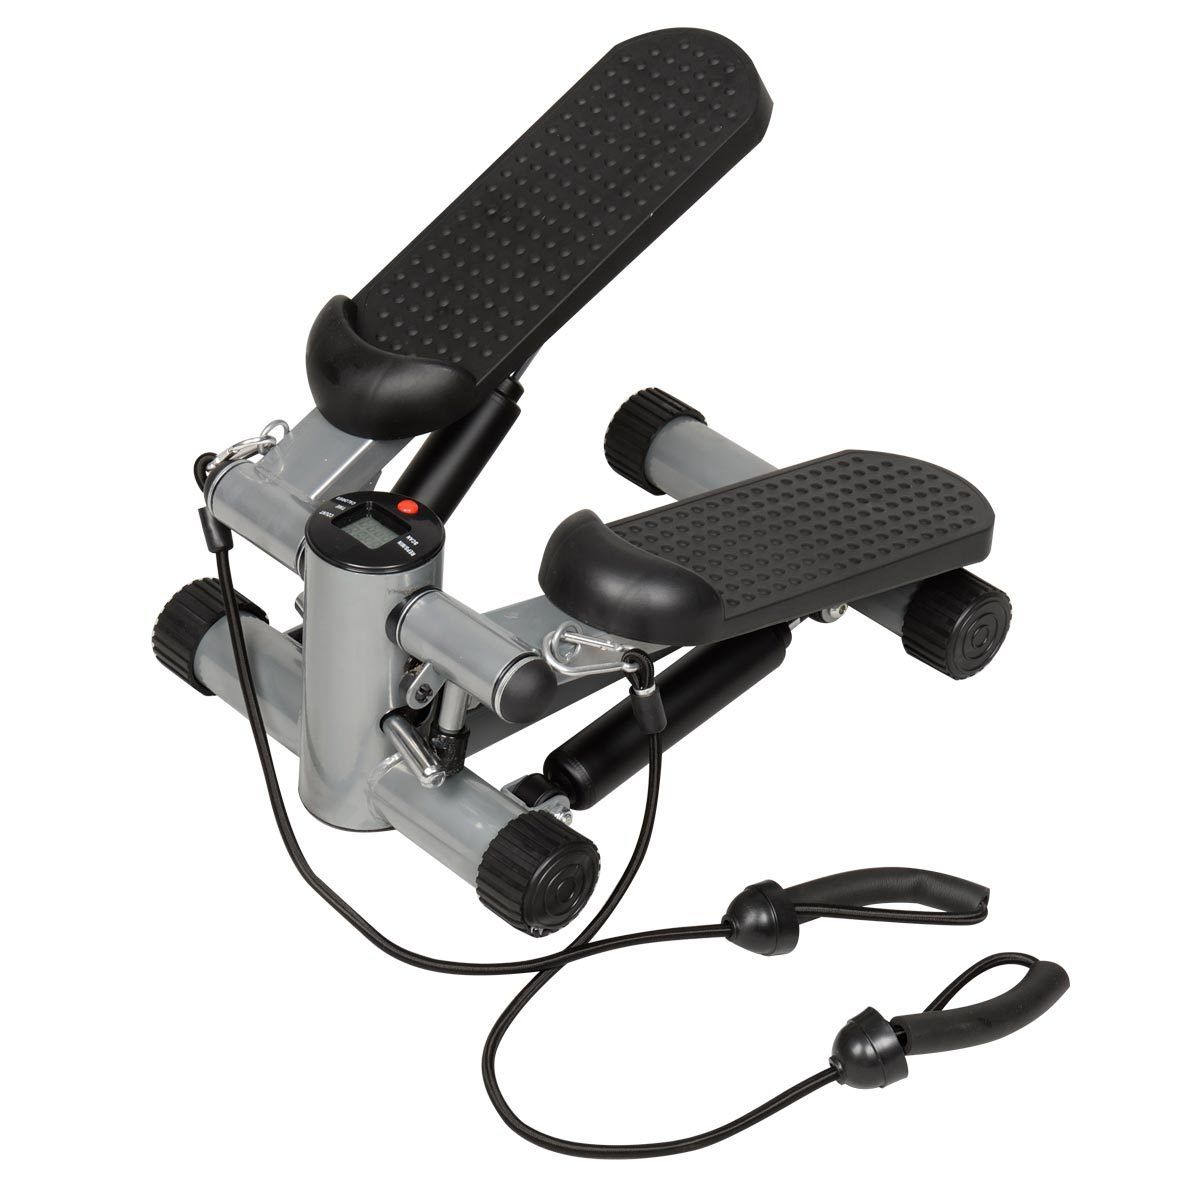 Costway Air Stair Climber Stepper Exercise Machine Aerobic Fitness Step Equipment Bands (Black)